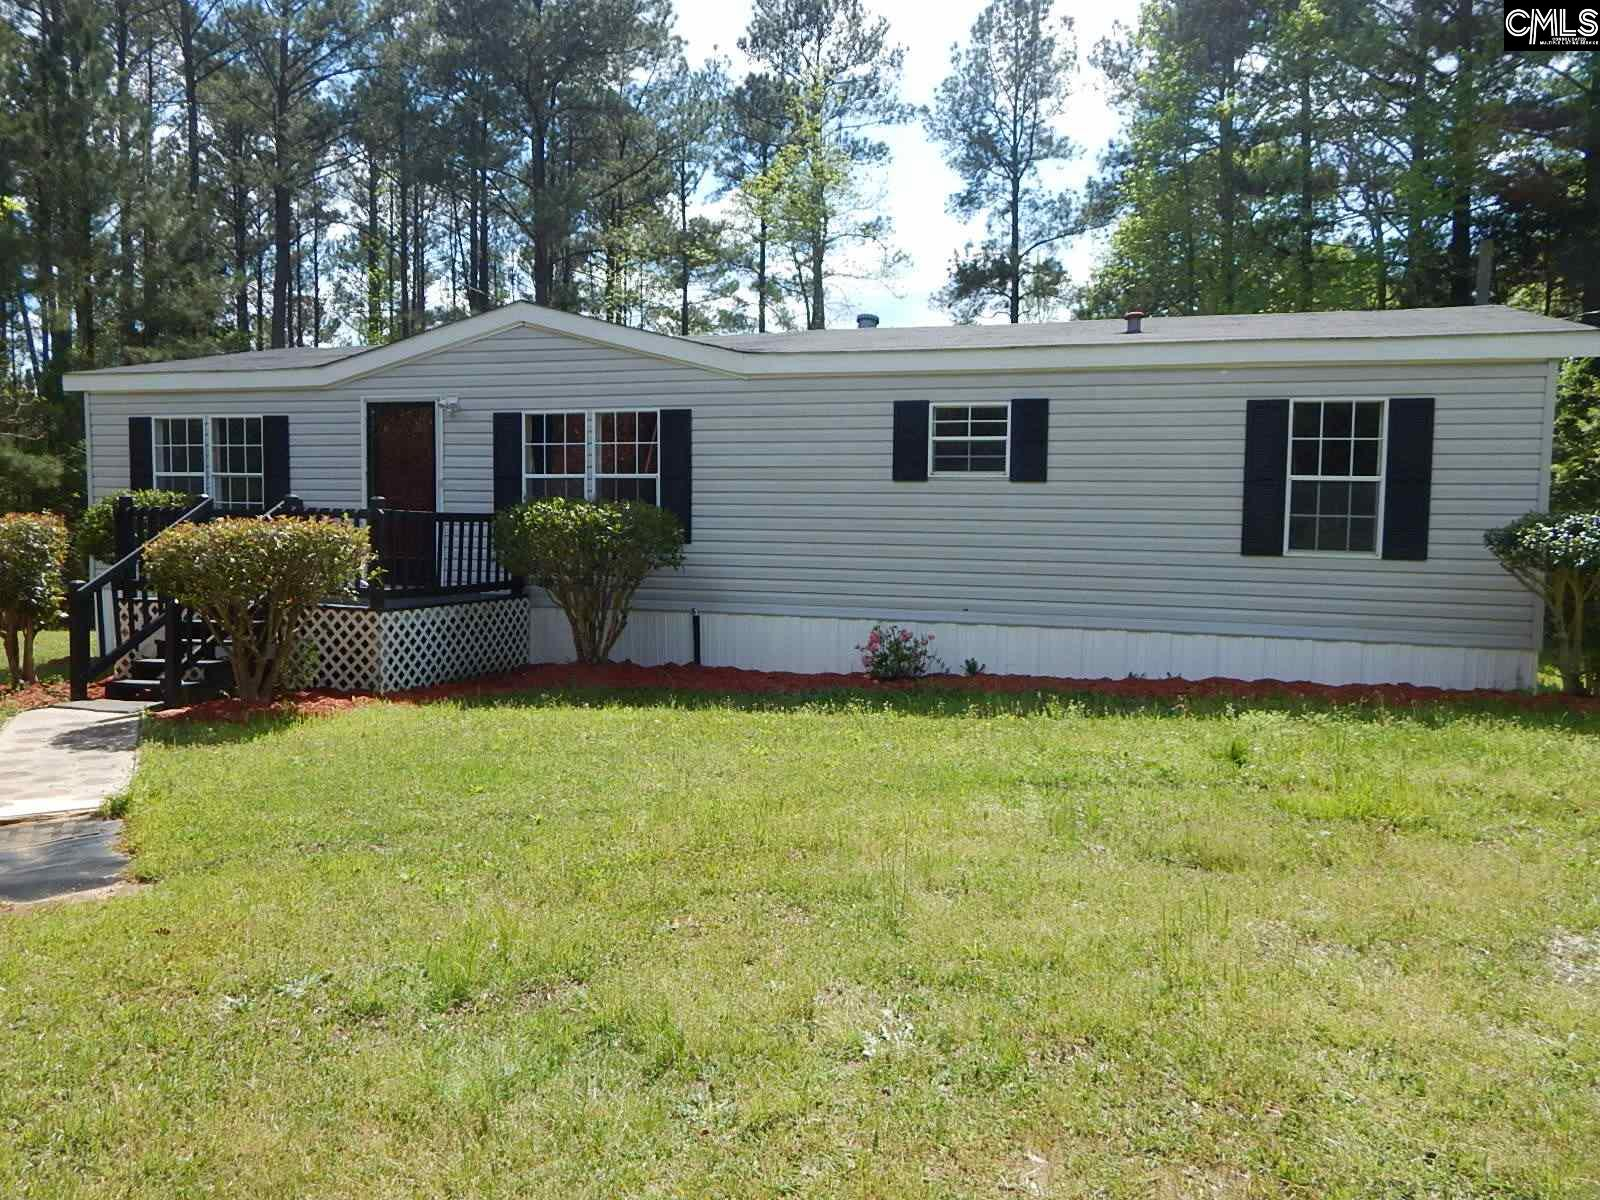 1485 John G Richards Camden, SC 29020-9999